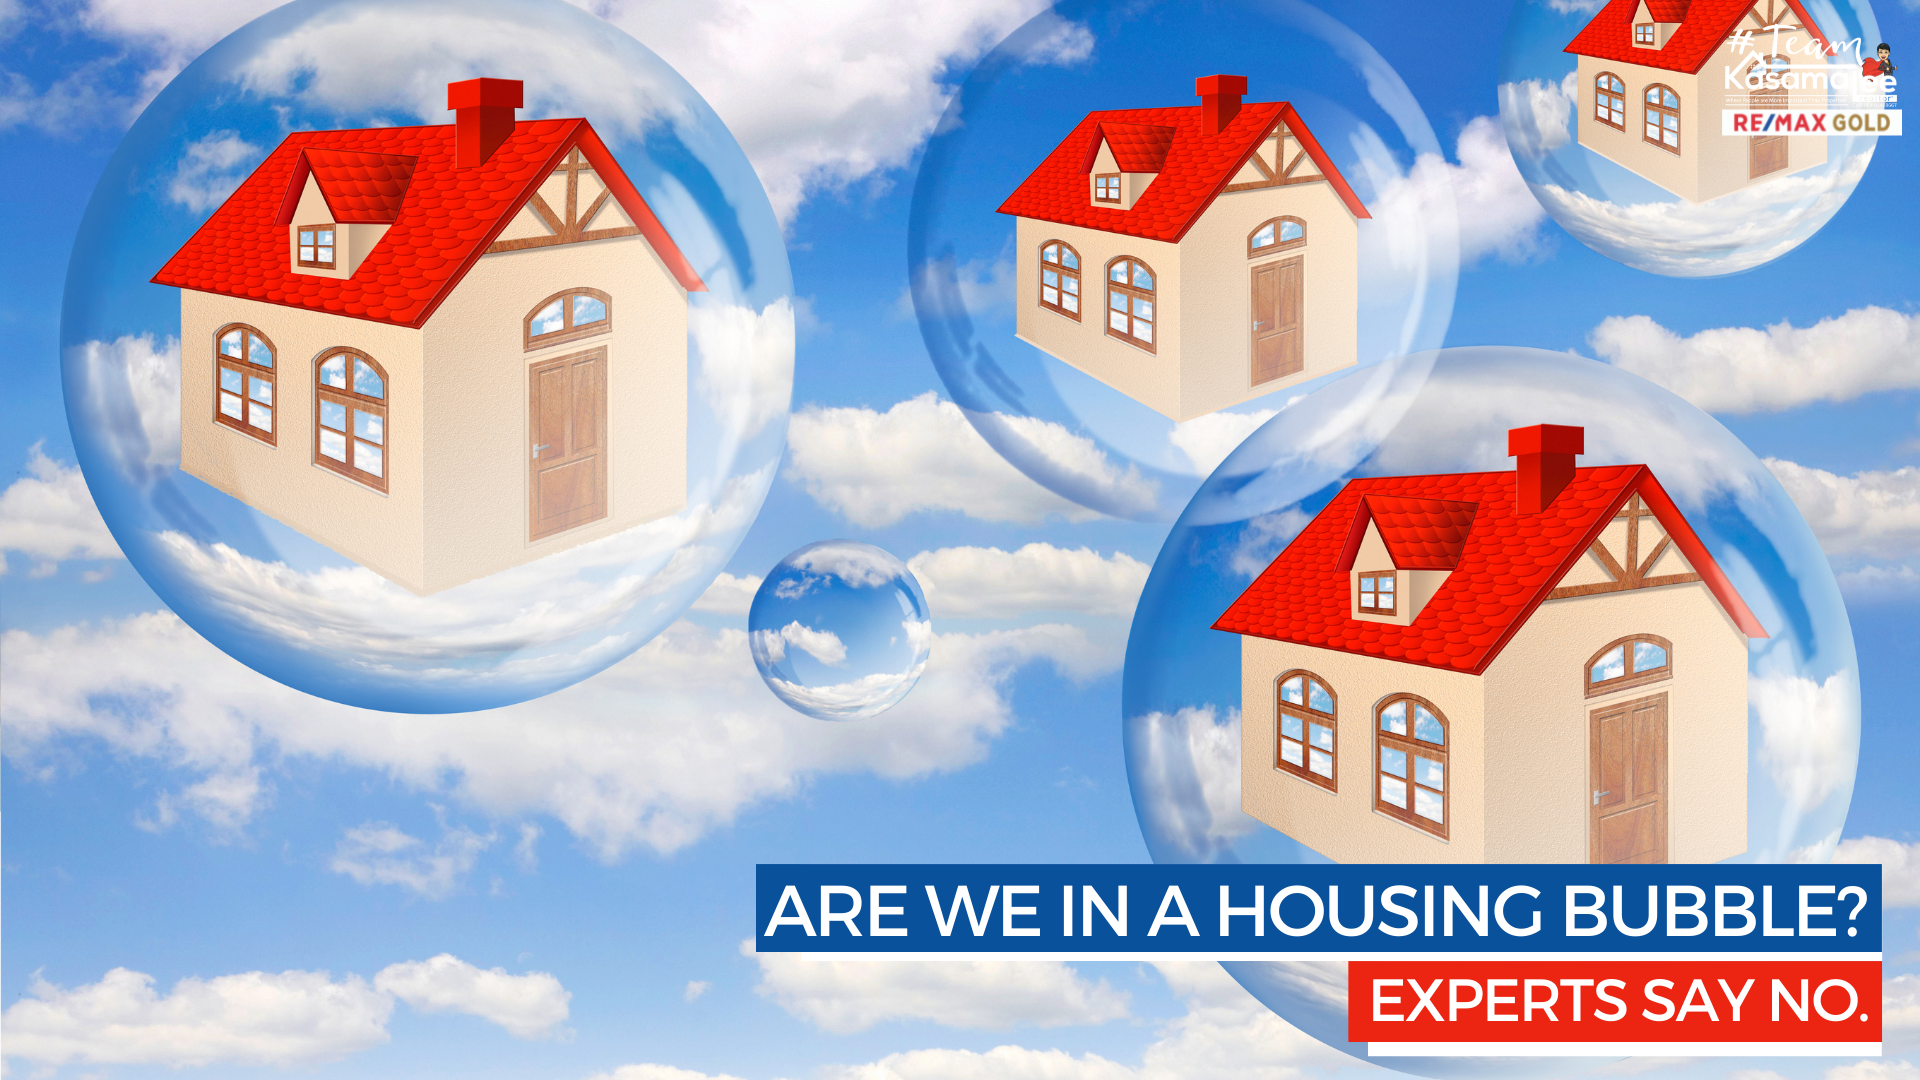 Are We in a Housing Bubble? Experts Say No.